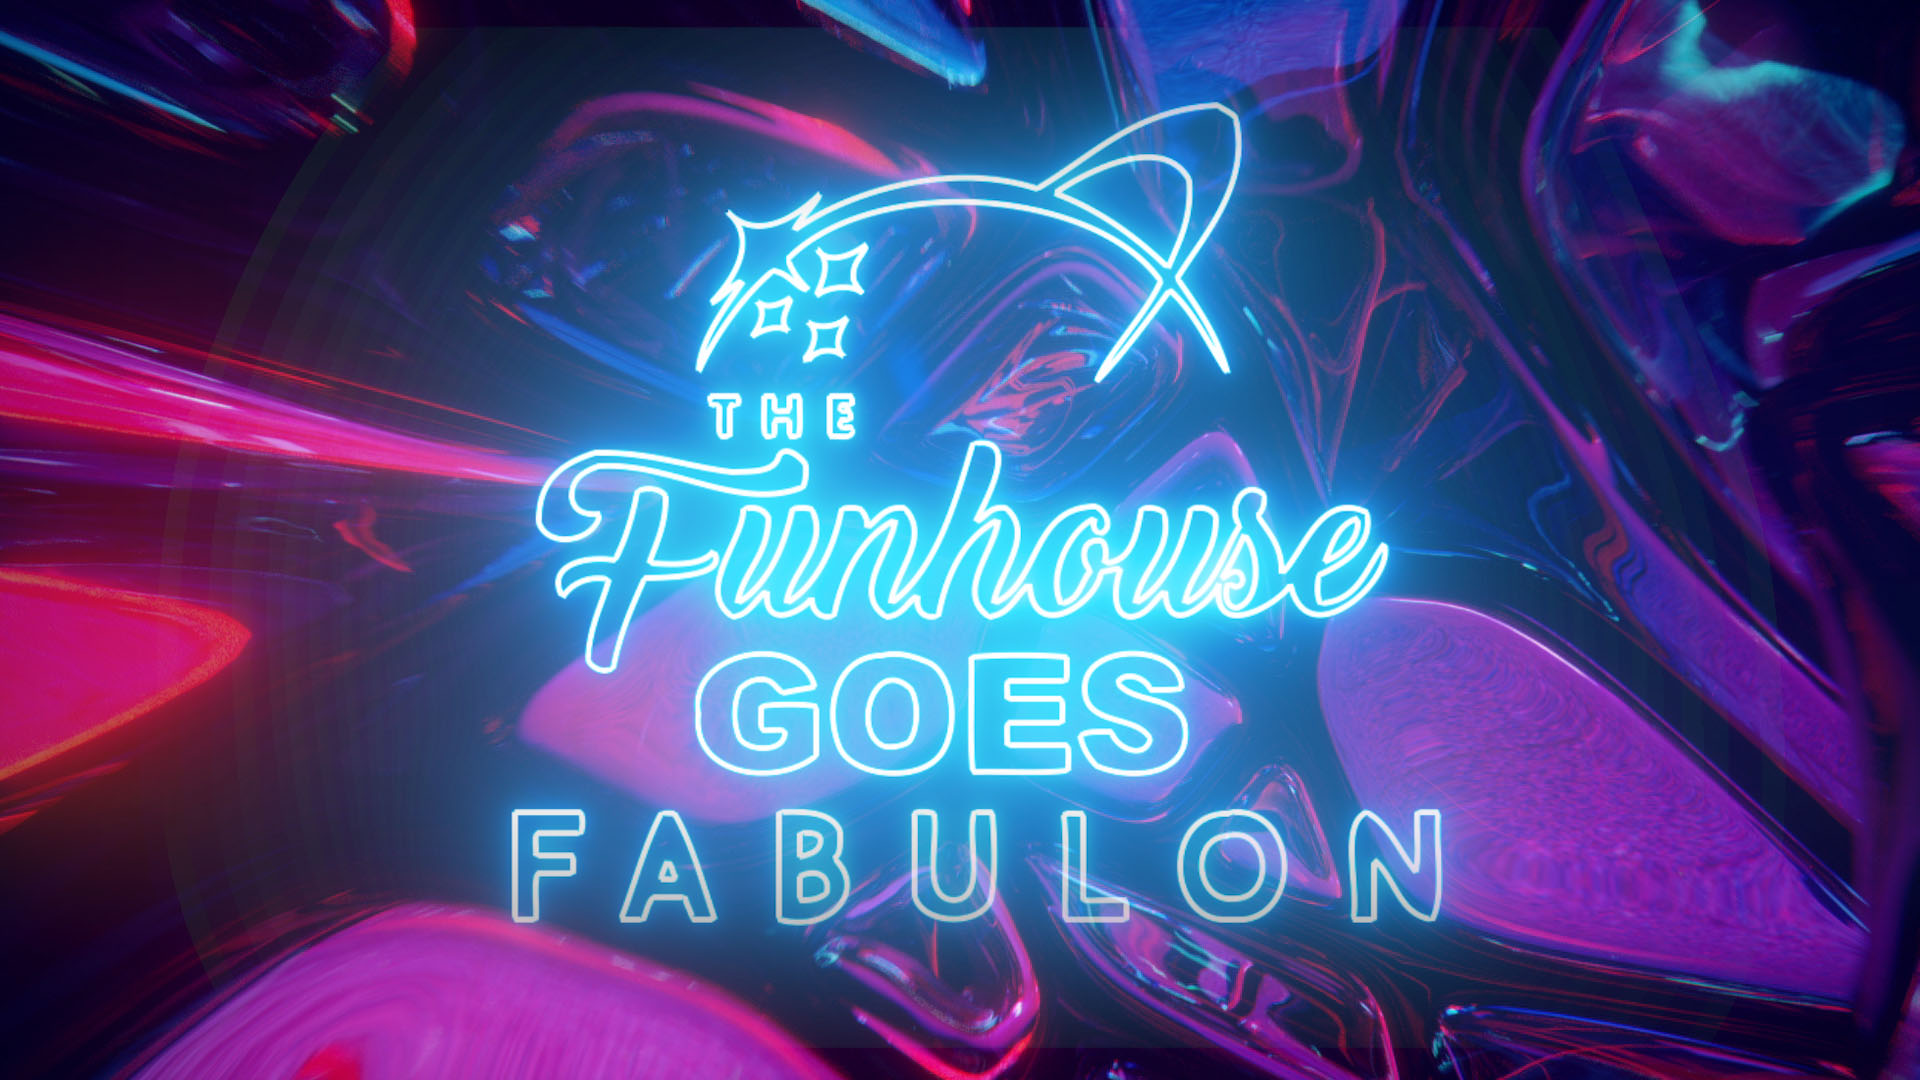 Tickets for The Funhouse Goes Fabulon in Toronto from ShowClix